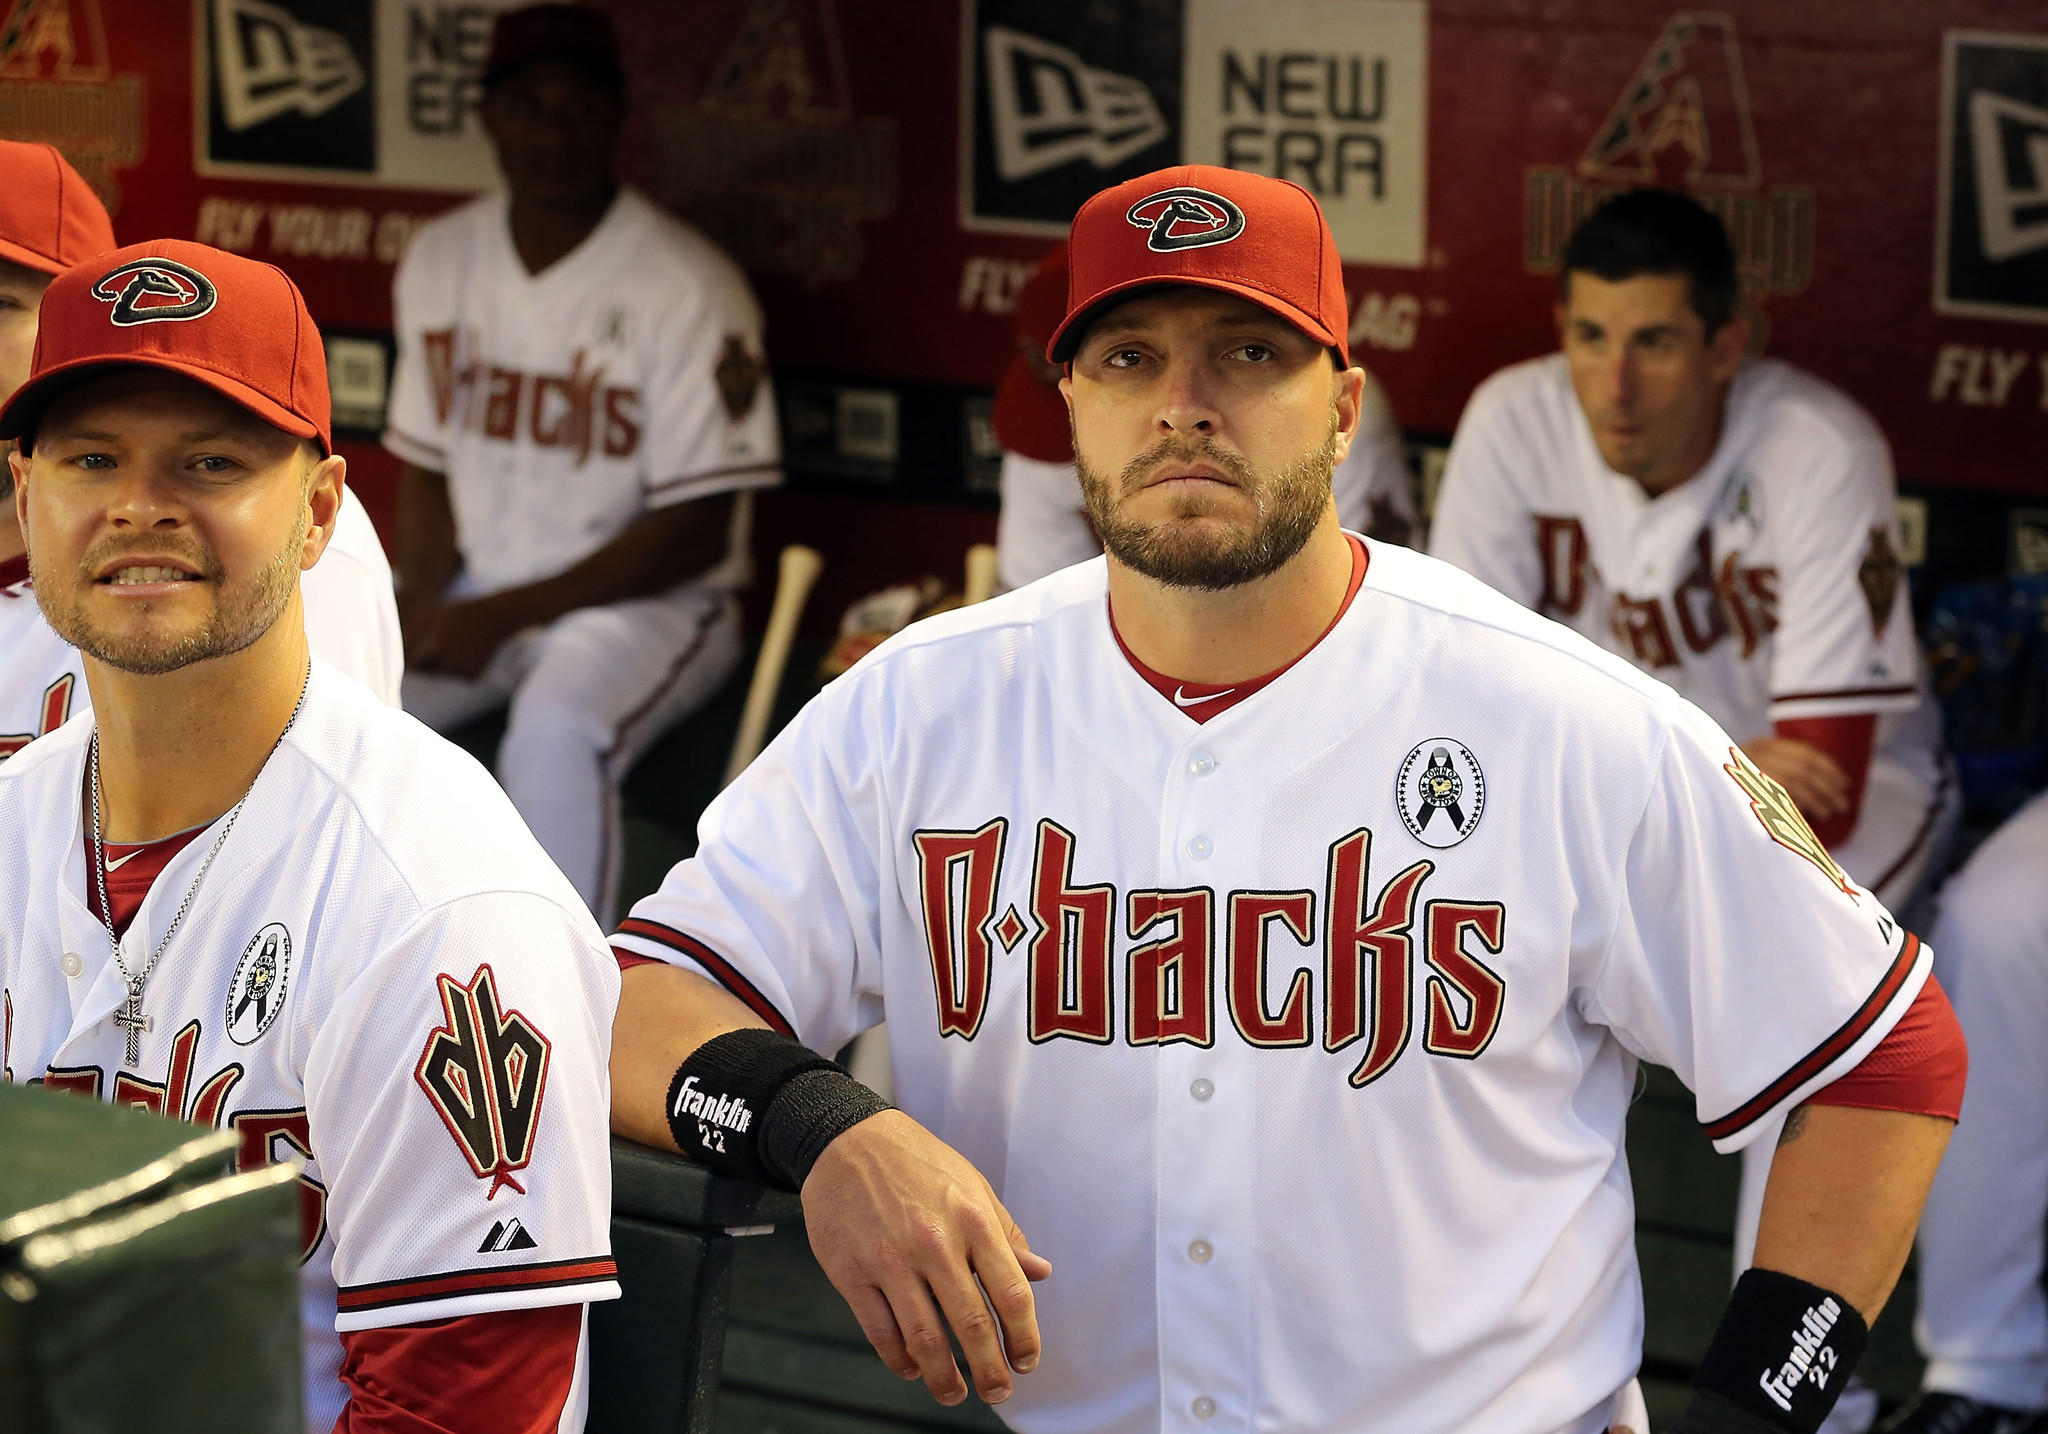 Eric Hinske of the Diamondbacks during a game in 2013.